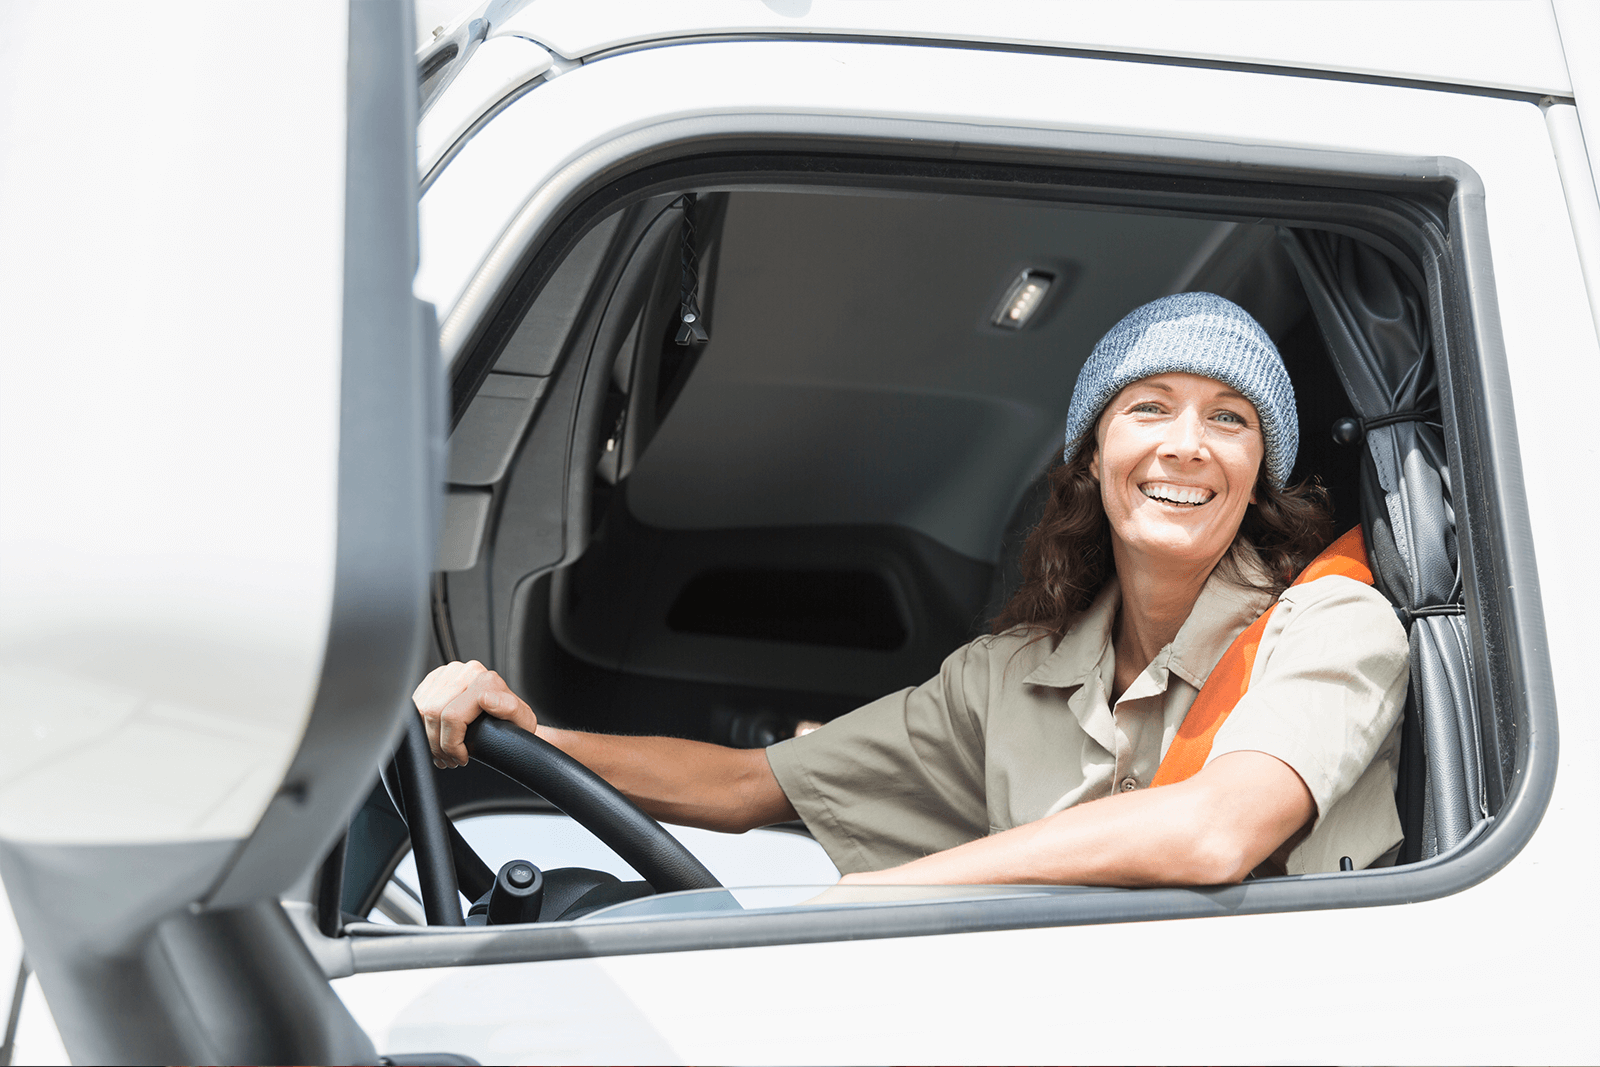 Female truck drivers have a tremendous opportunity as the need for truck drivers expands.